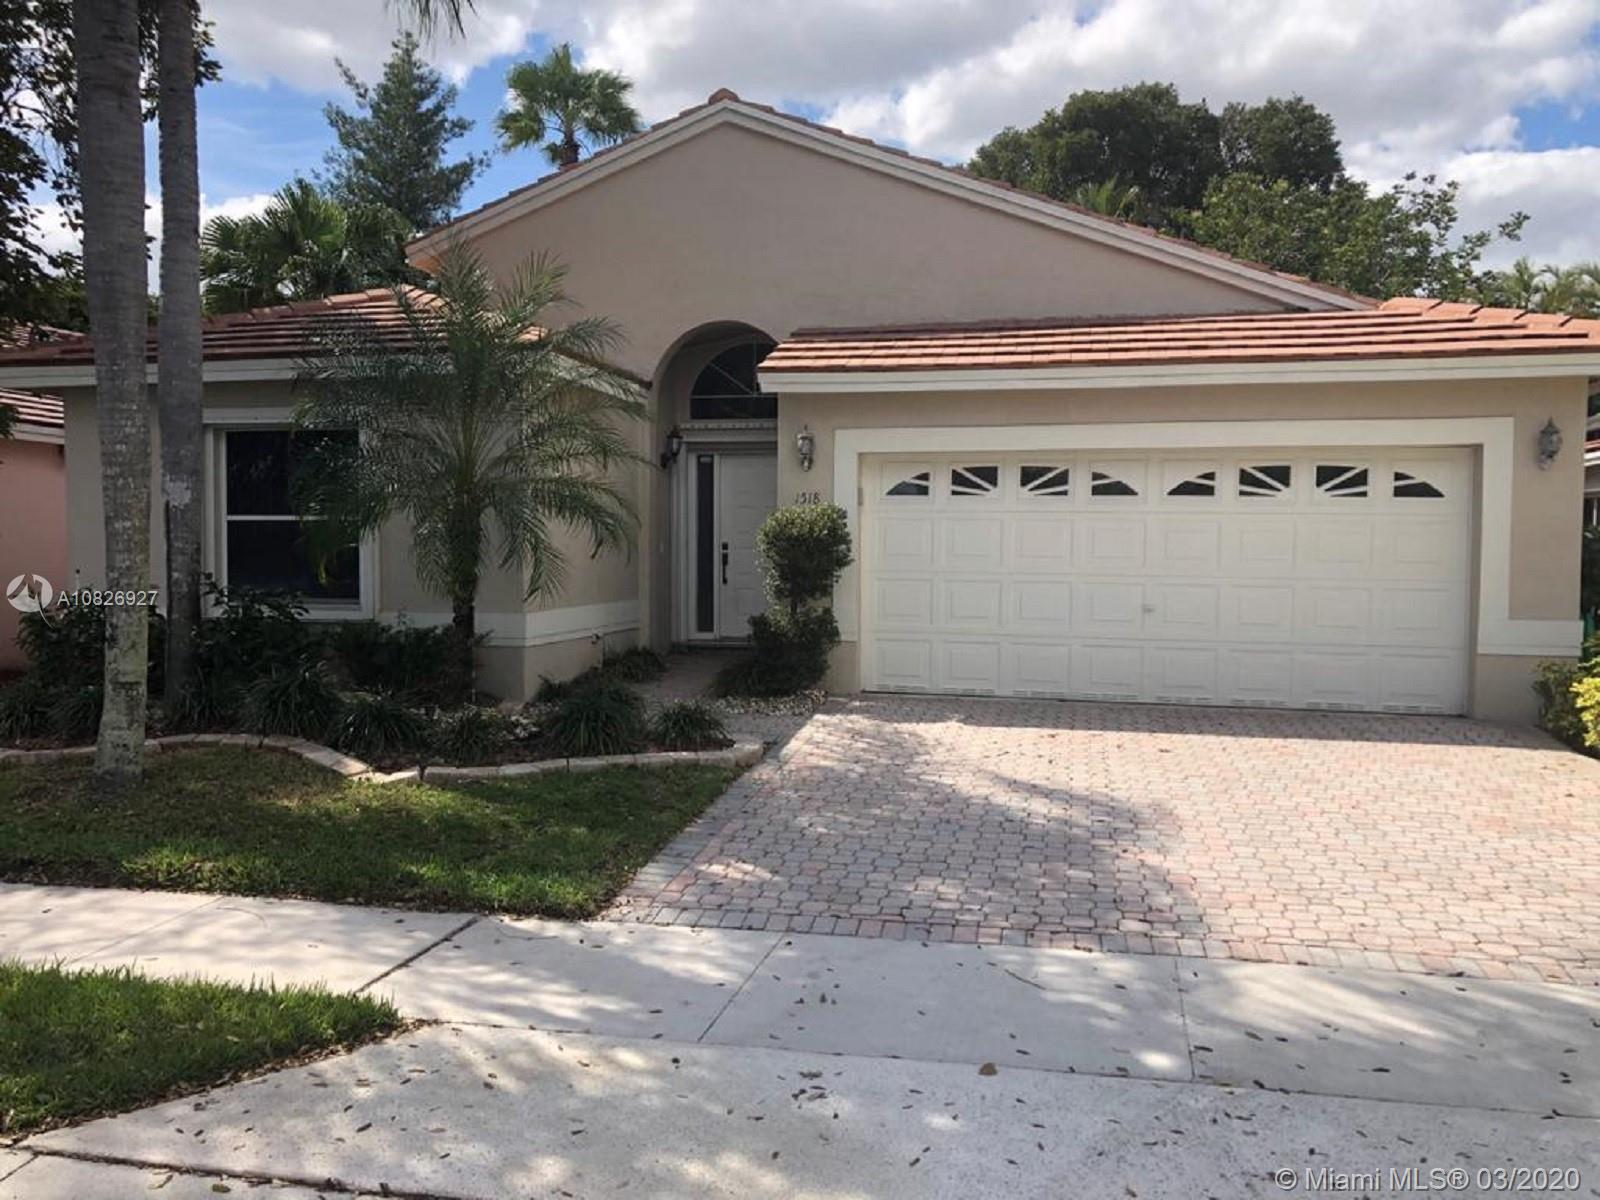 PRICED TO SELL!! THIS ONE WILL GO QUICKLY!  Tropical Paradise in gated golf community. **3rd Bedroom currently den/office** New roof, 7 years old. Assoc covers cable, 24/7 security, alarm, outside landscaping, sprinklers system, exterior painting. Close to I-75, schools, shopping center and restaurants. MOTIVATED SELLER  in process of relocating.. Seller will remove chandeliers, washer & Dryer. *AS IS*